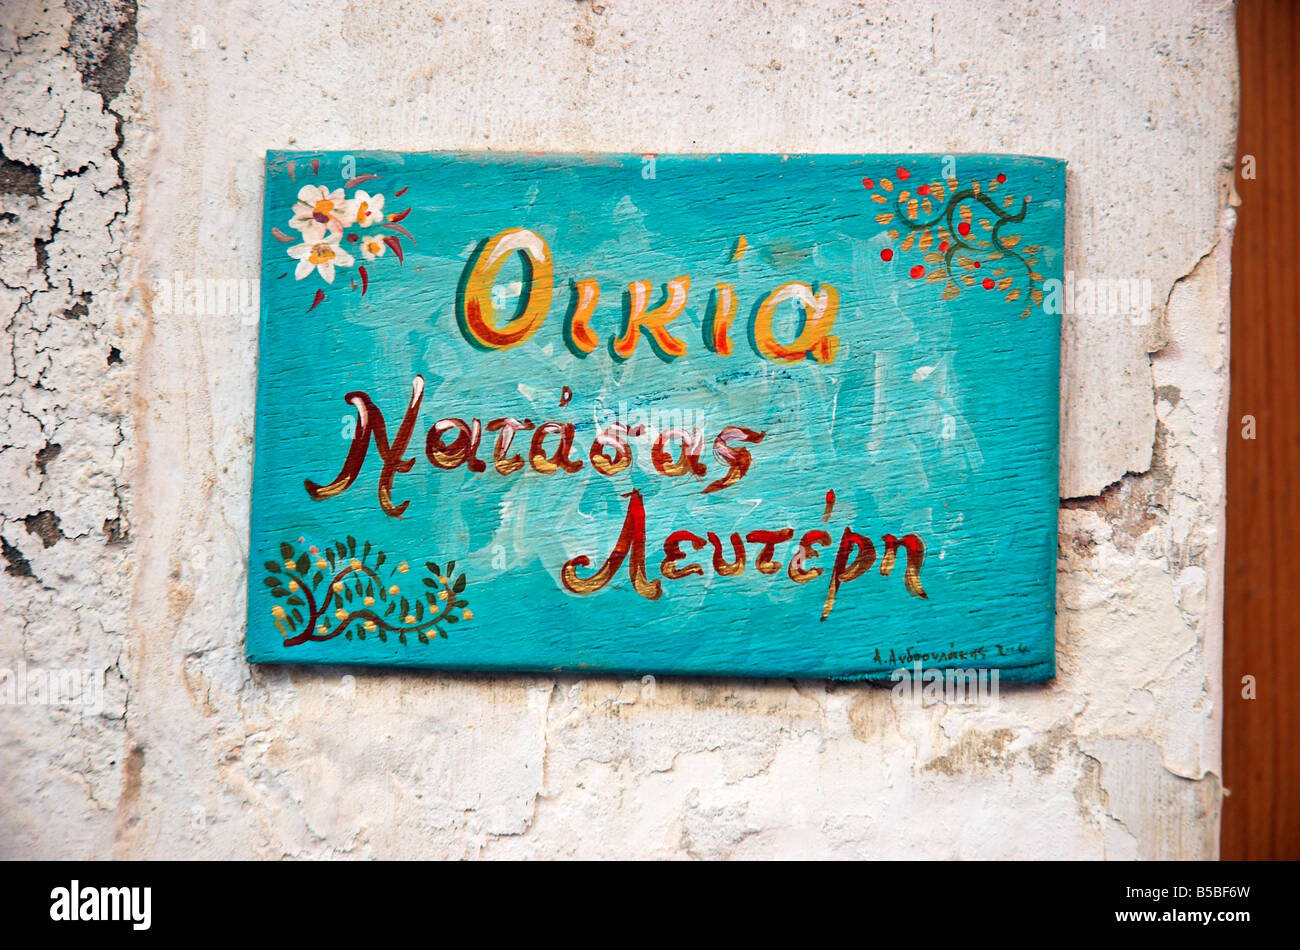 Decorative greek writing - Stock Image